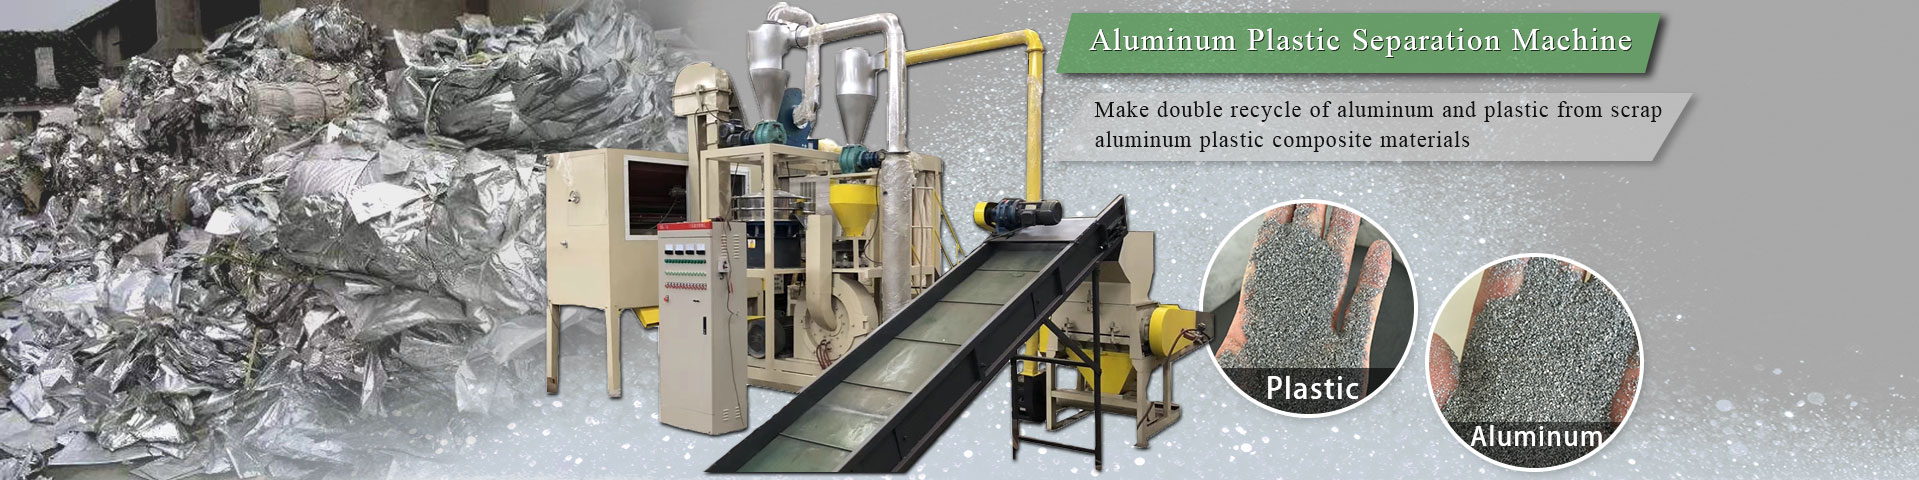 Aluminum plastic separation machine